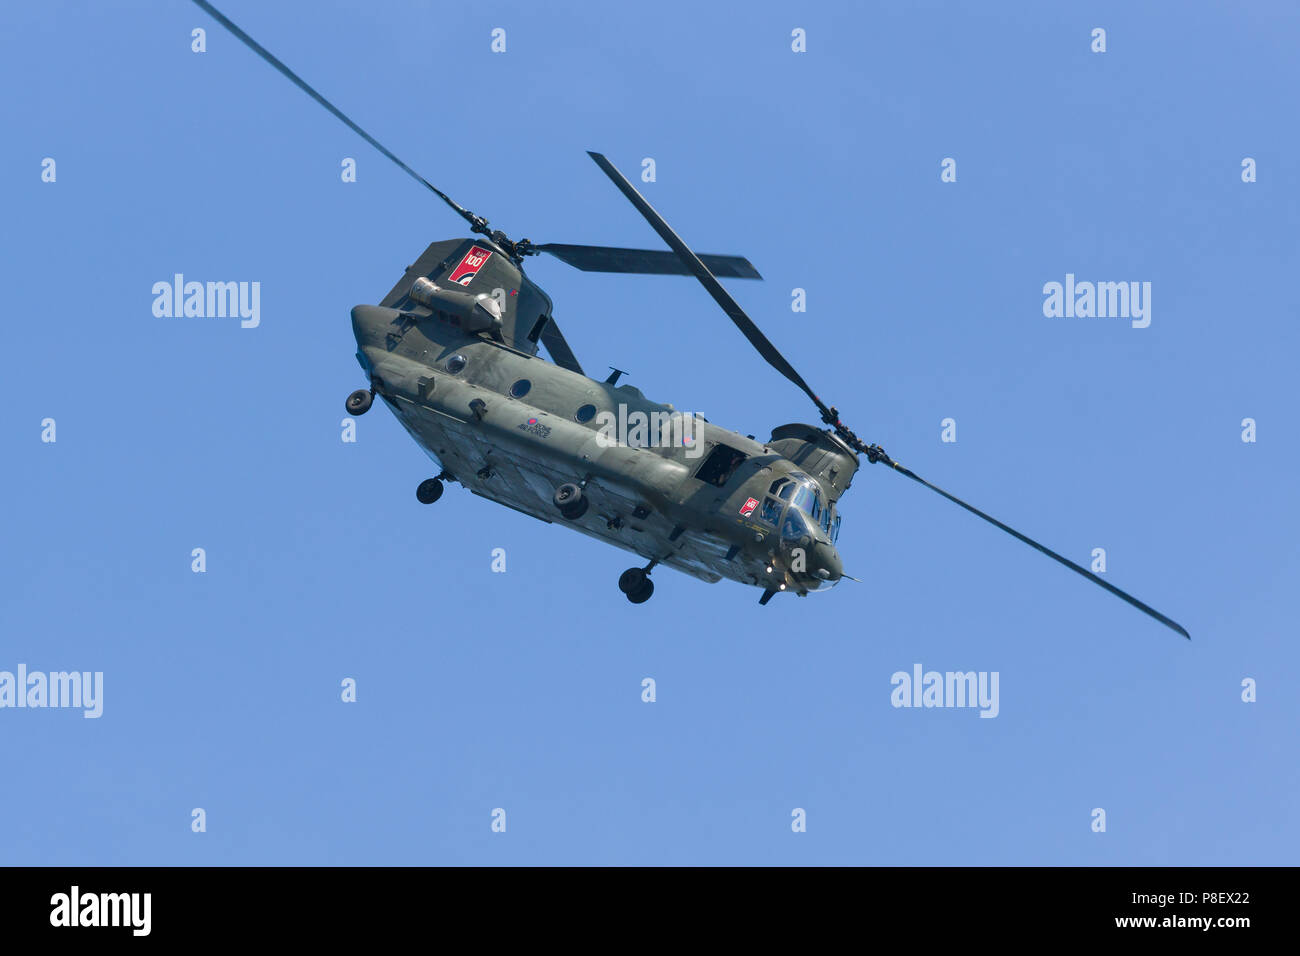 Boeing Chinook military transport helicopter of the Royal Air Force who use it to provide battlefield support - Stock Image